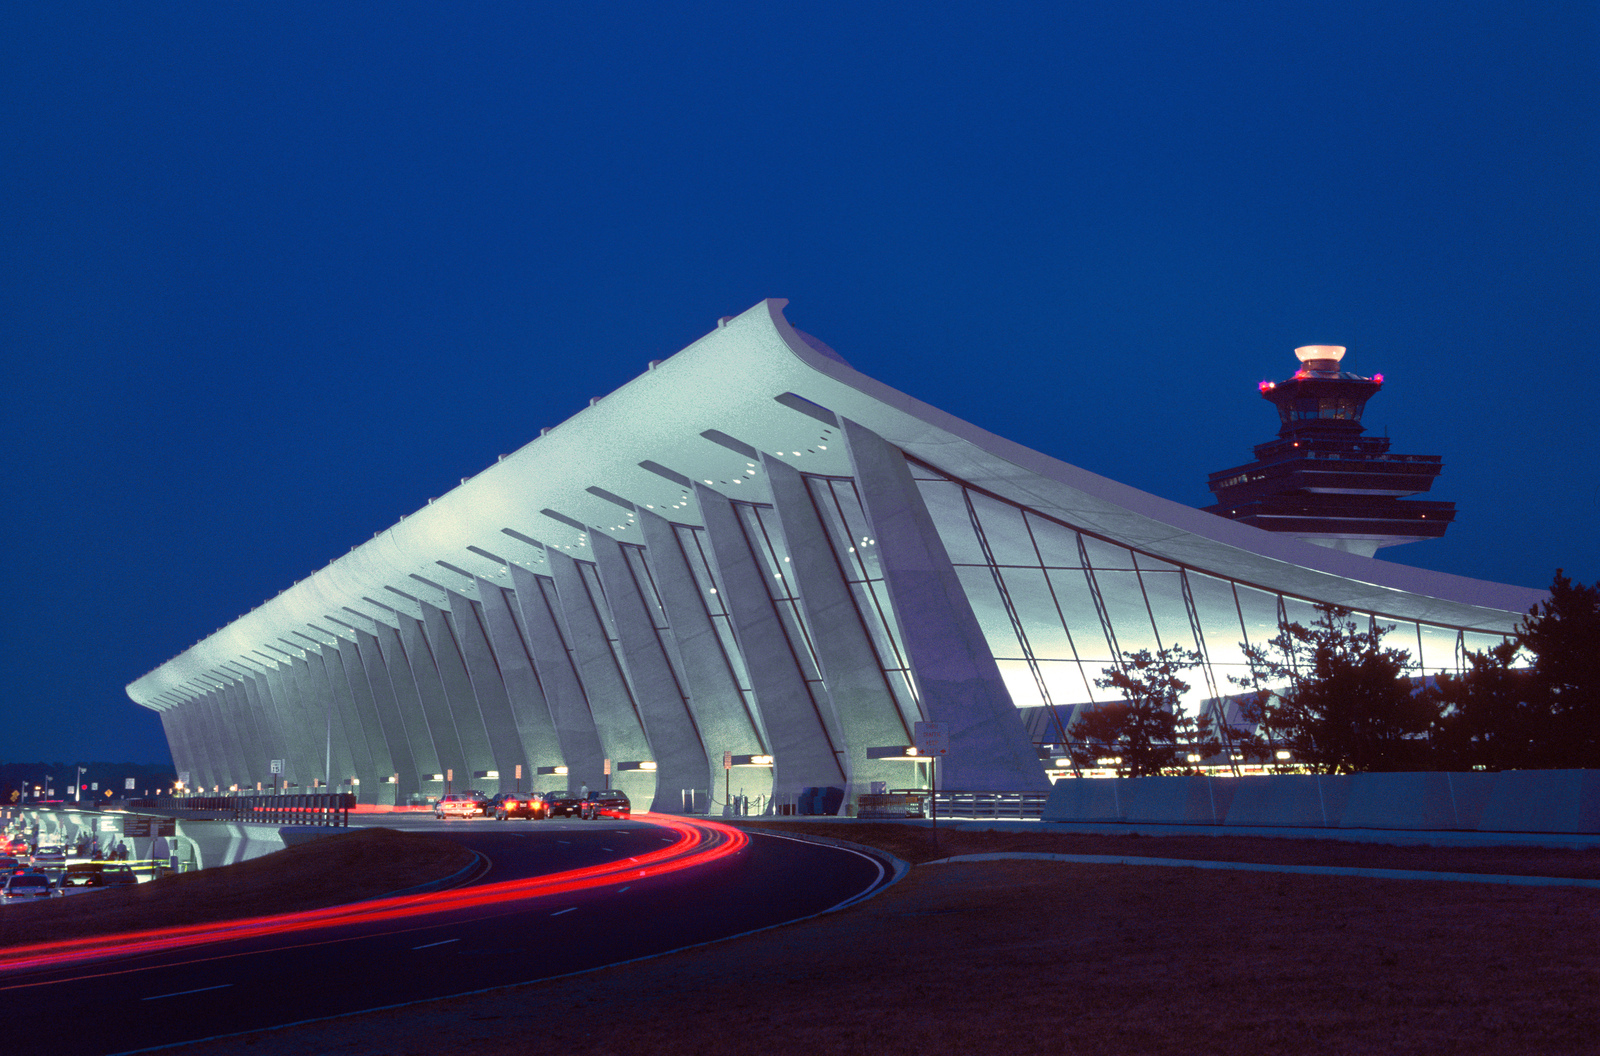 The world is at your fingertips with Dulles International Airport being just a short drive away.